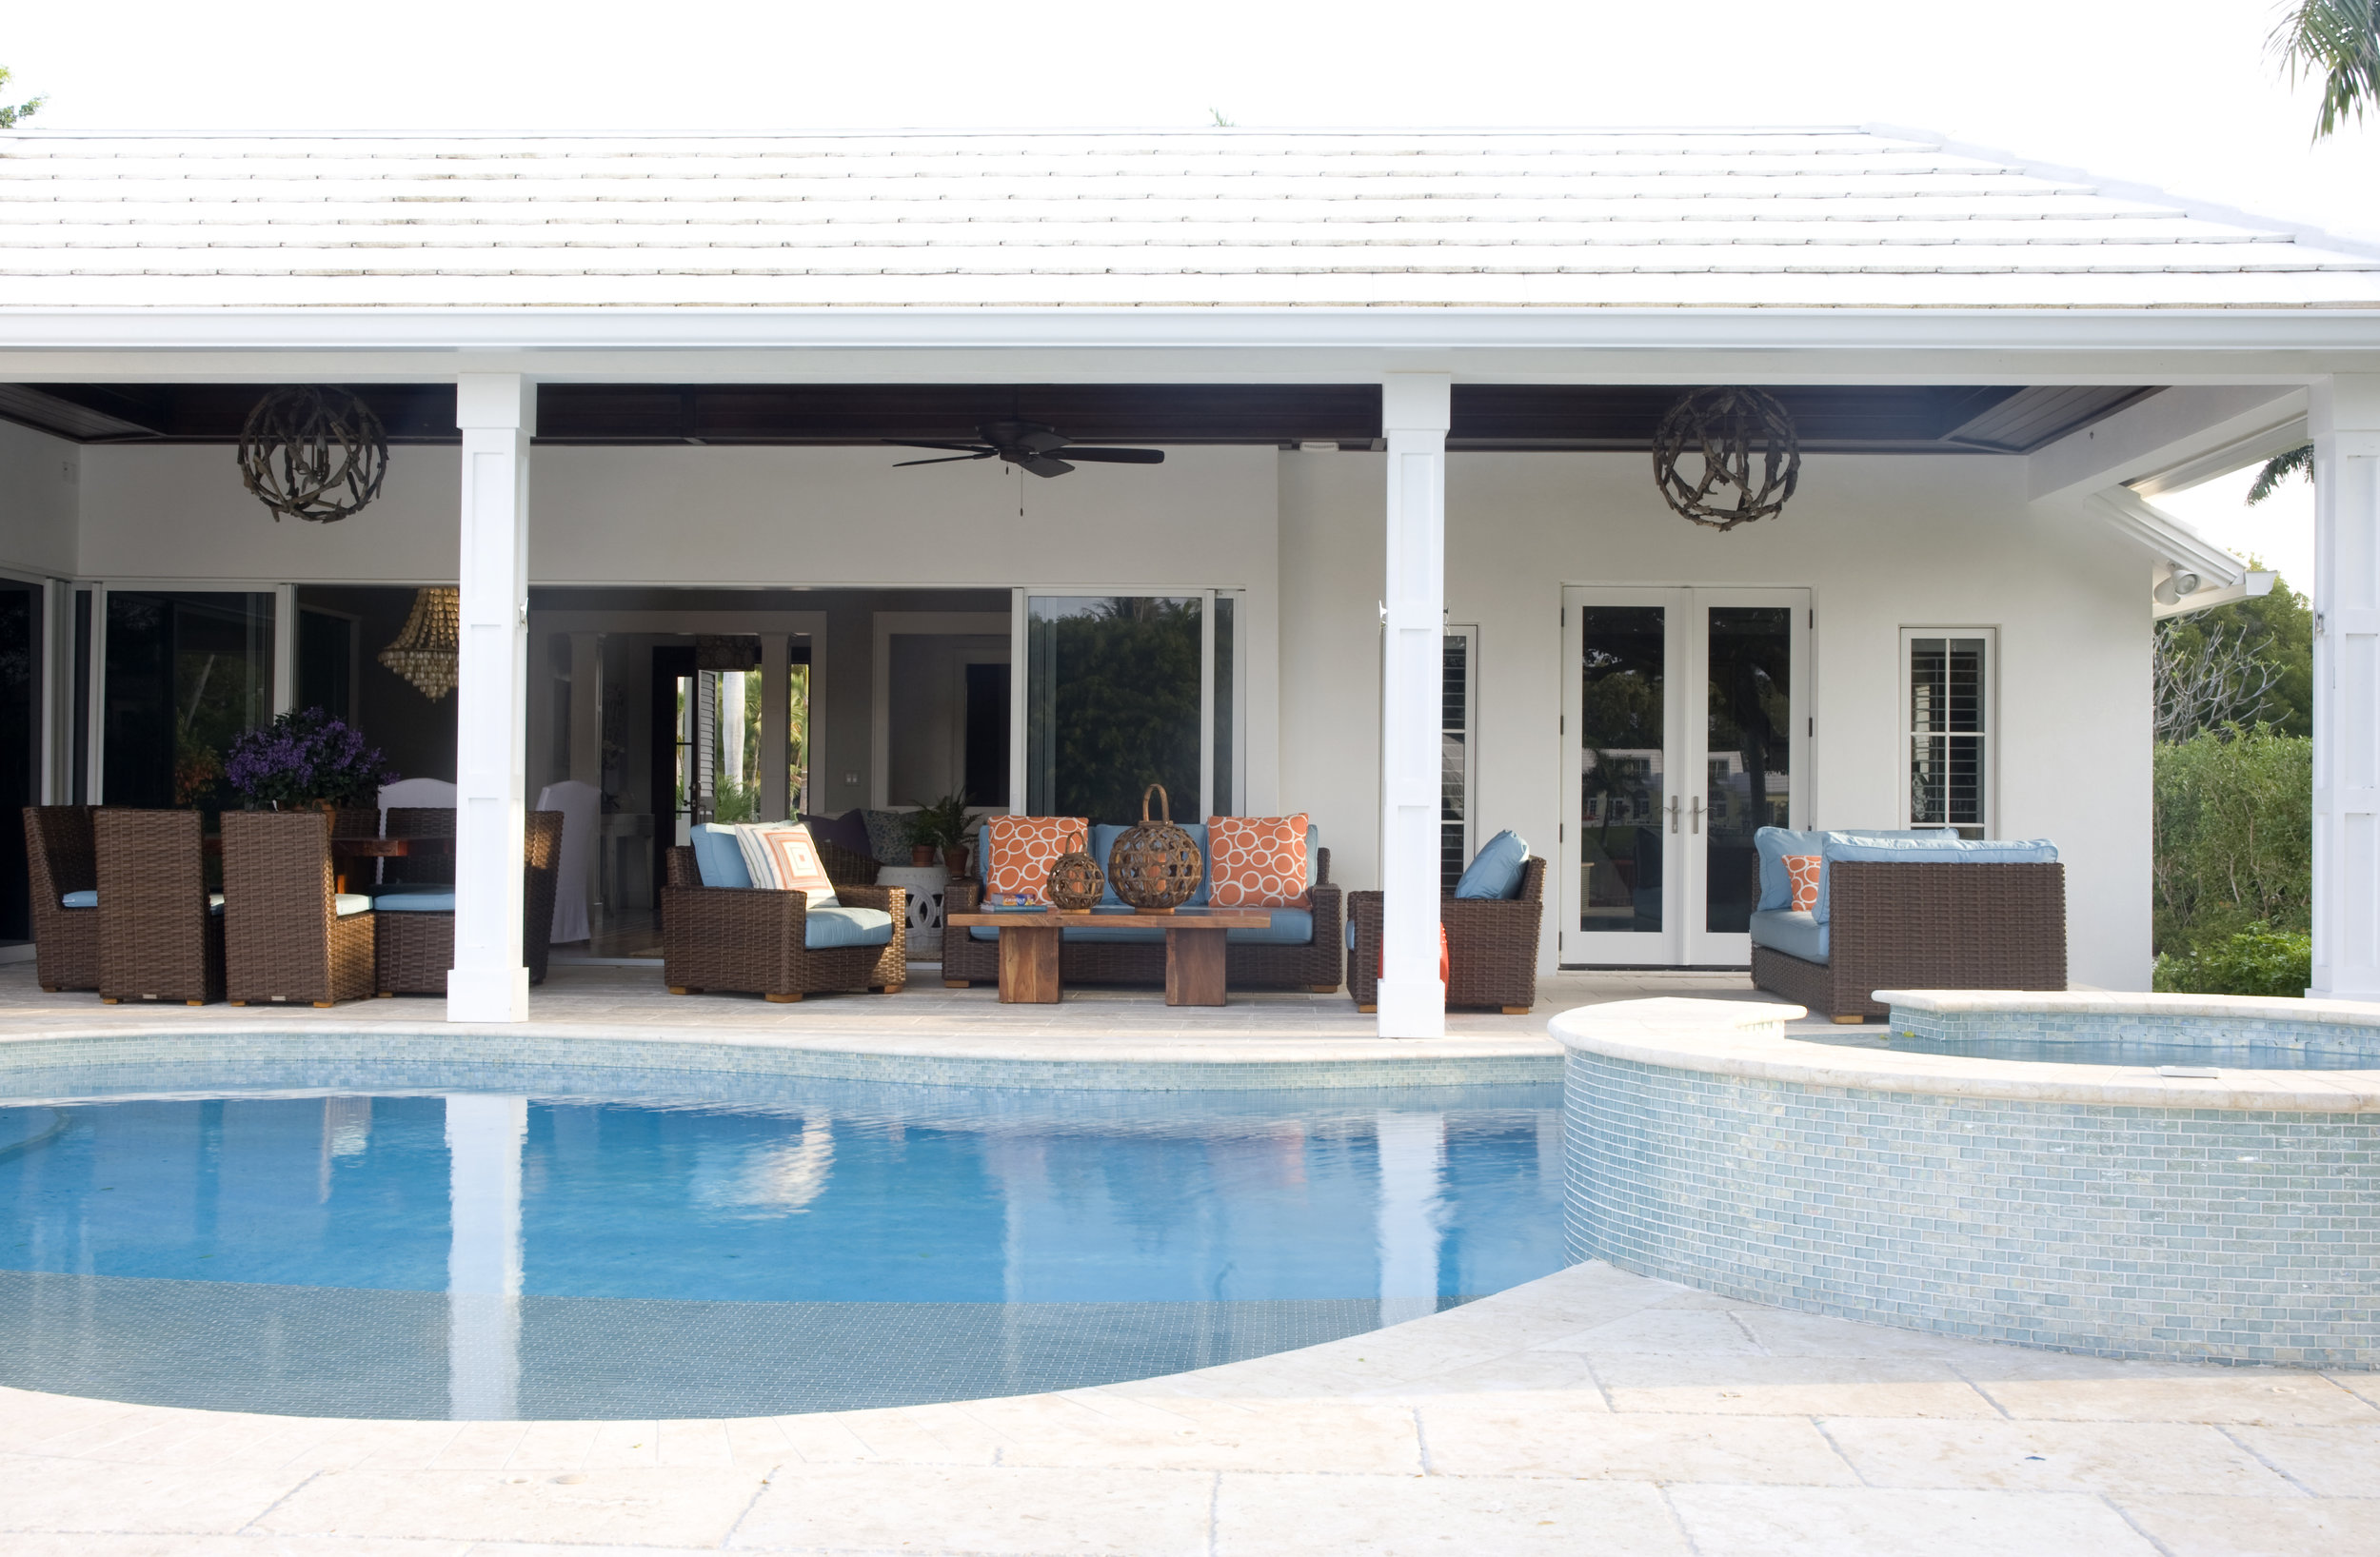 exterior patio and pool297.jpg